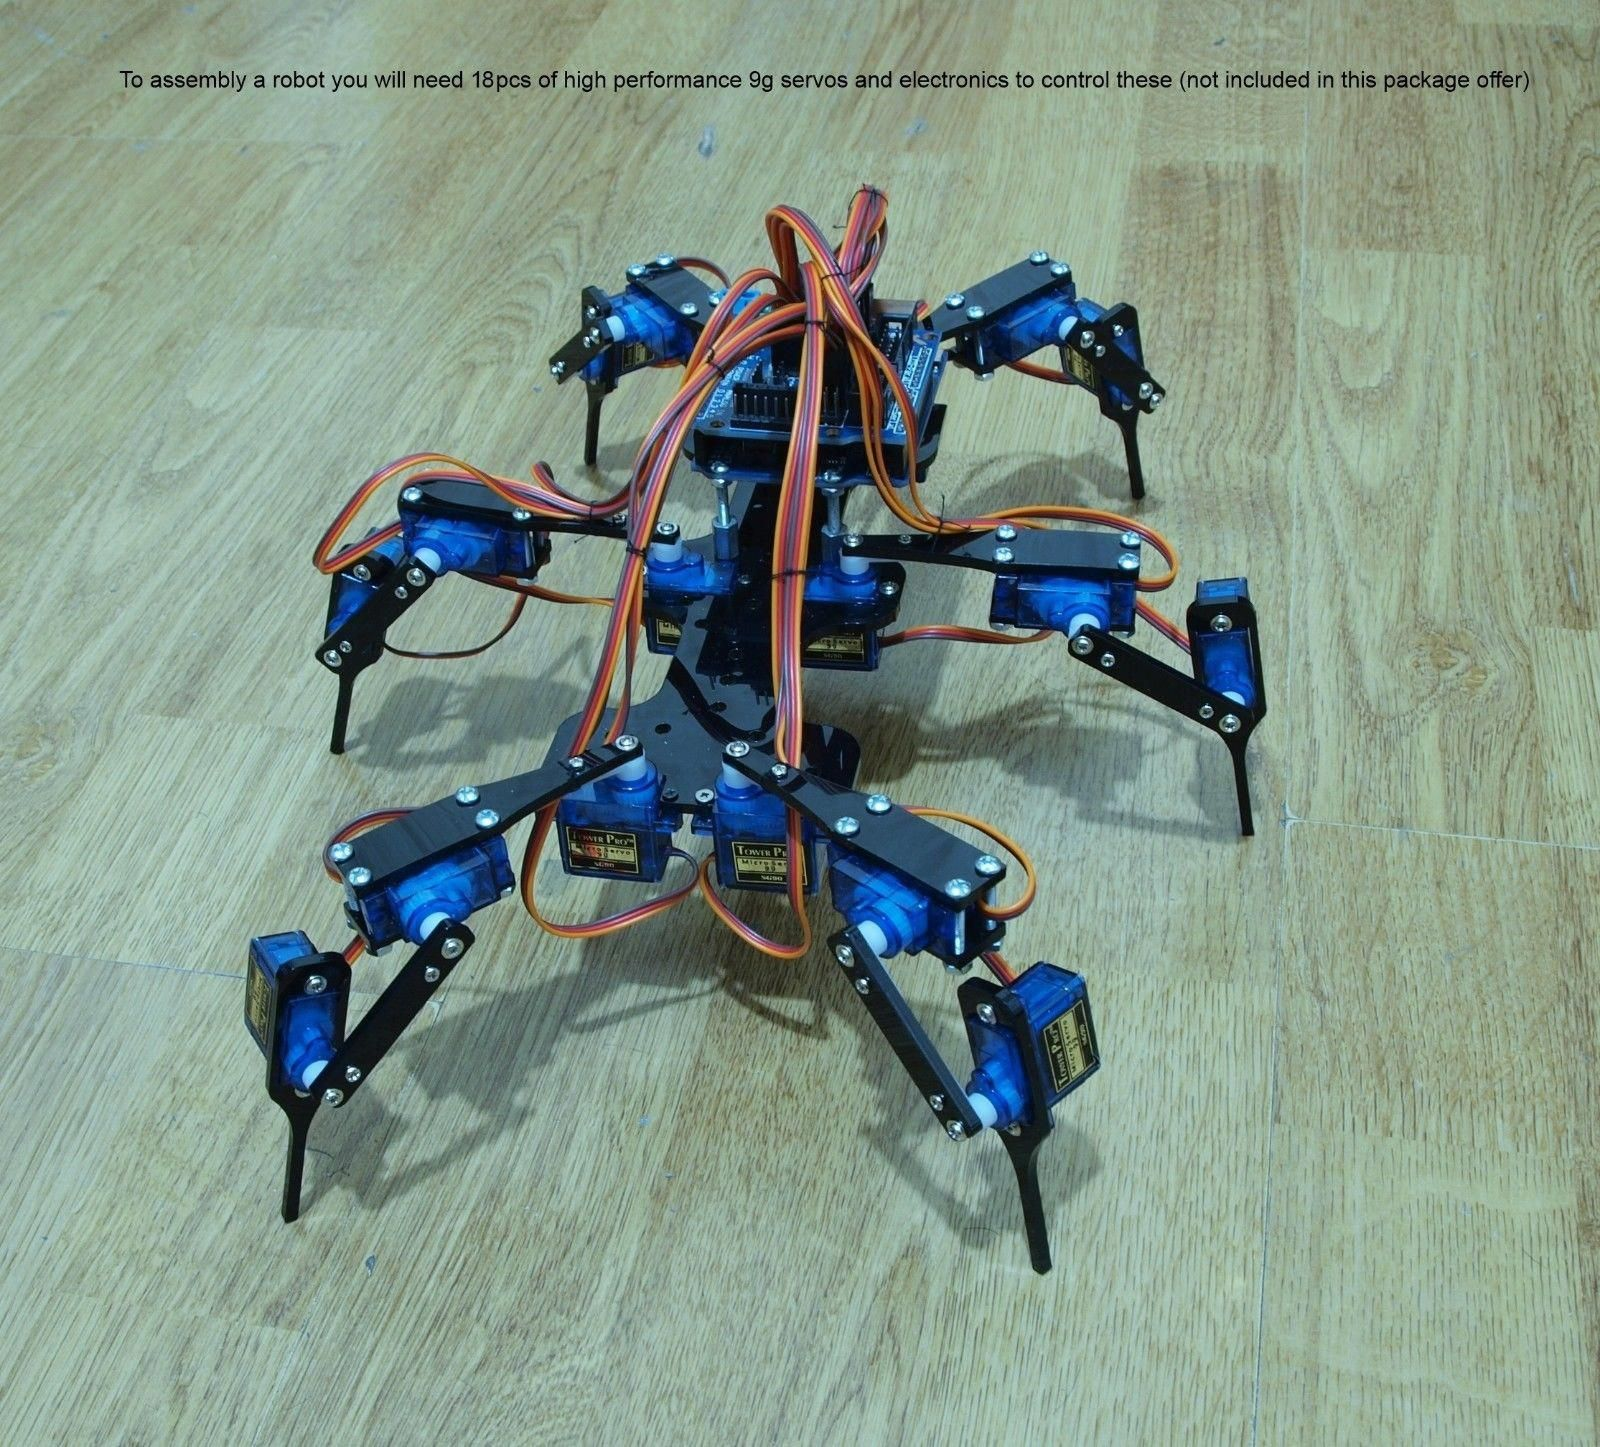 13 99 Six Feet Robot Hexapod Mini Spider Arduino Diy Robot Kit